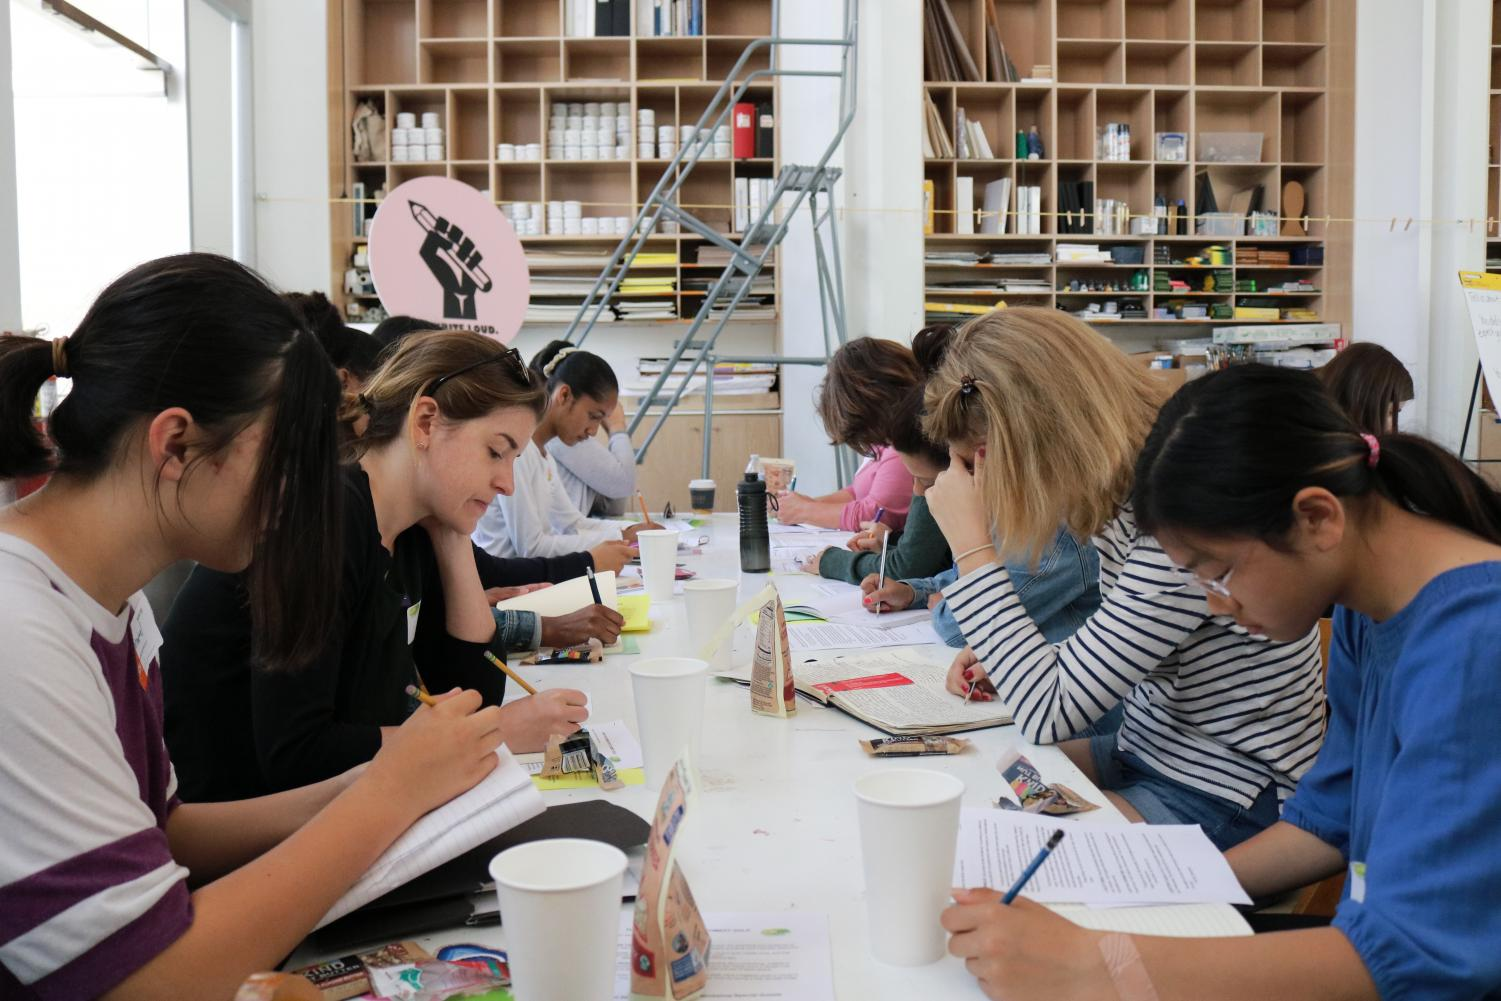 Writegirls respond to a prompt given by Alexandria McCale at the LACMA workshop.